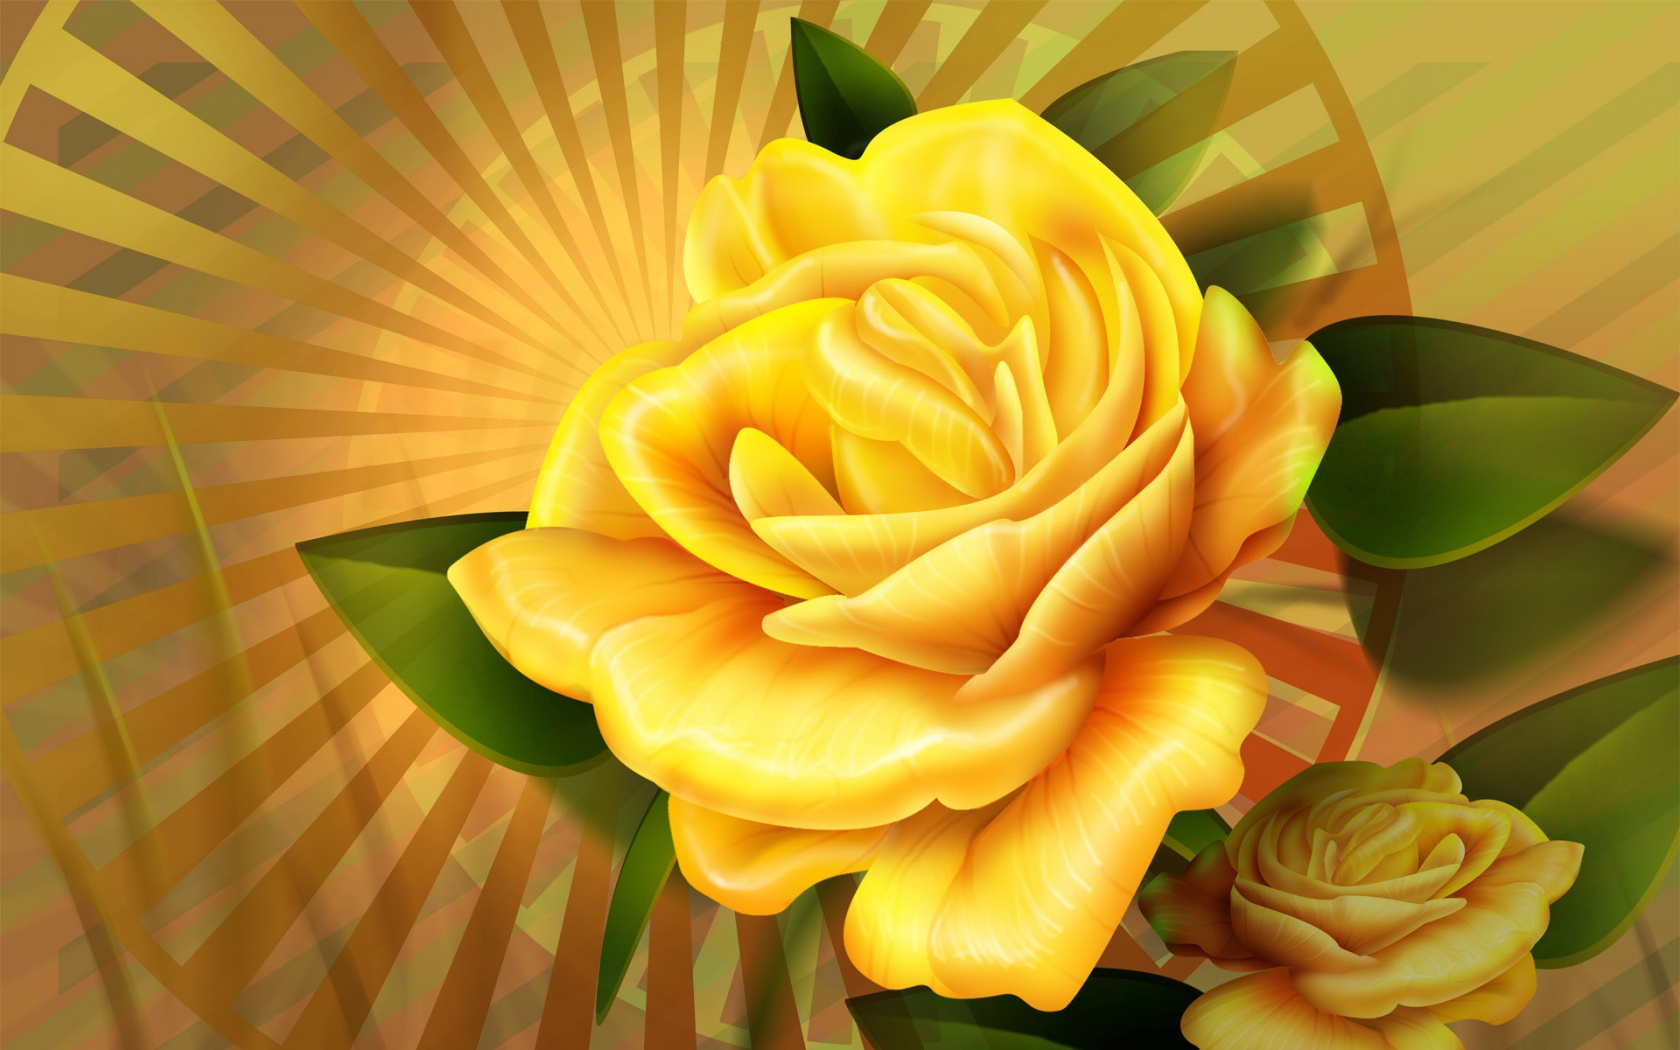 Yellow Rose 225.34 Kb